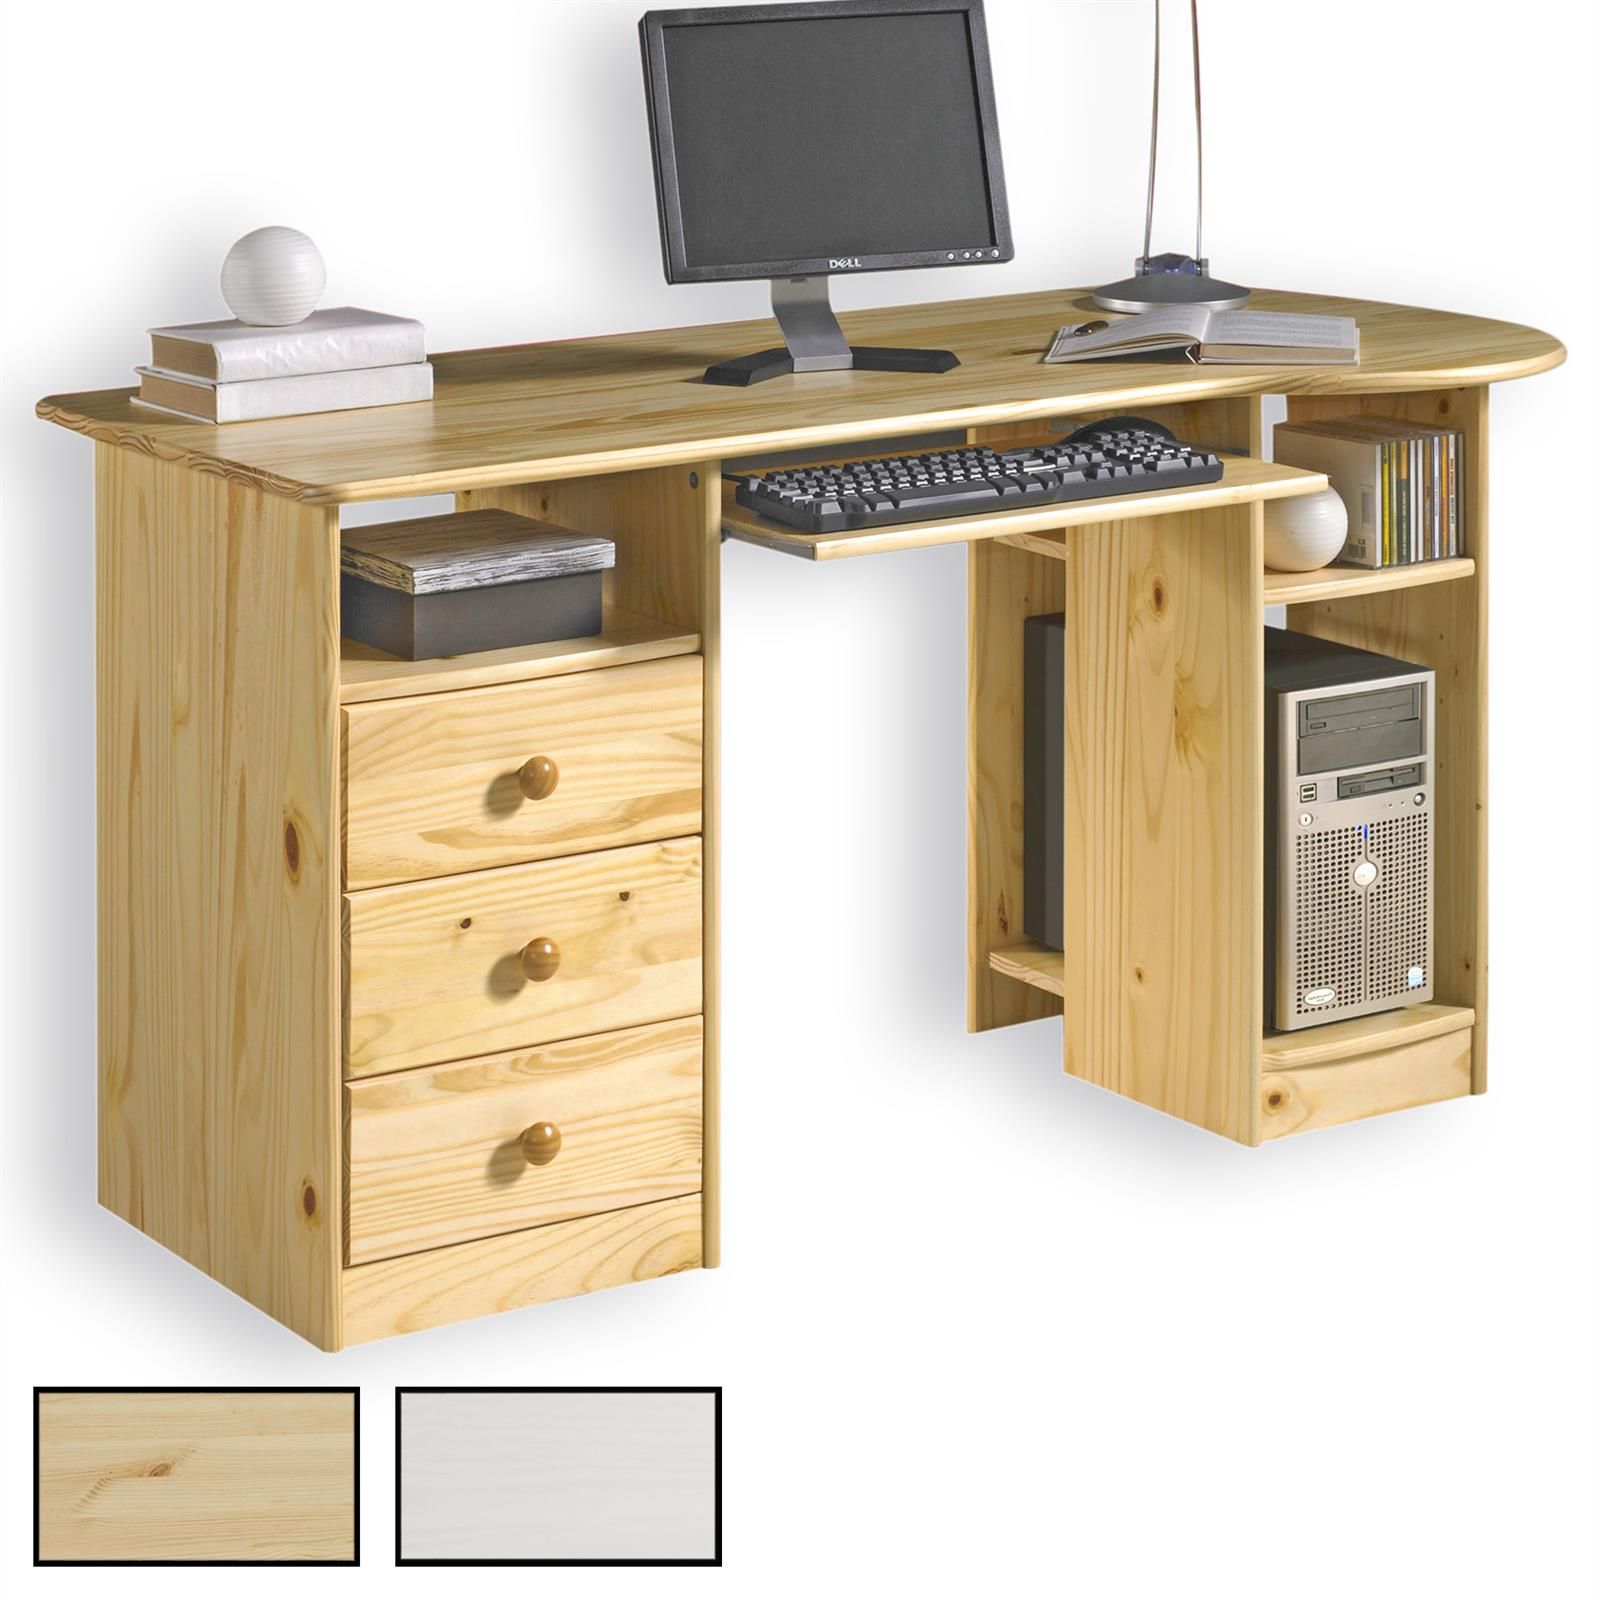 schreibtisch computertisch pc schreibtisch kiefer massiv mit 3 schubladen ebay. Black Bedroom Furniture Sets. Home Design Ideas